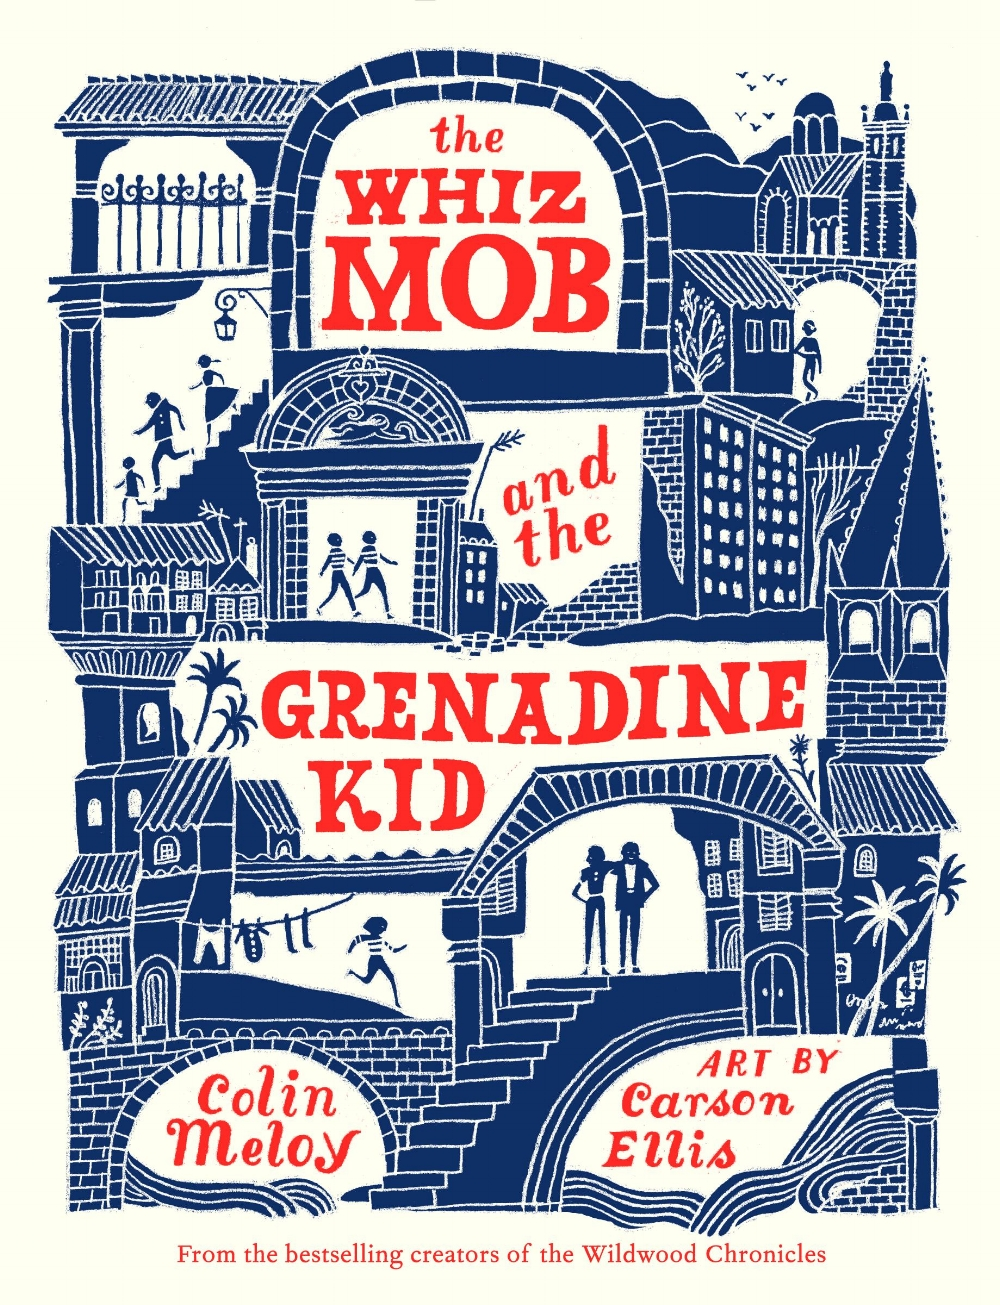 Cover of  The Whiz Mob and the Grenadine Kid , by Colin Meloy, illustration by Carson Ellis